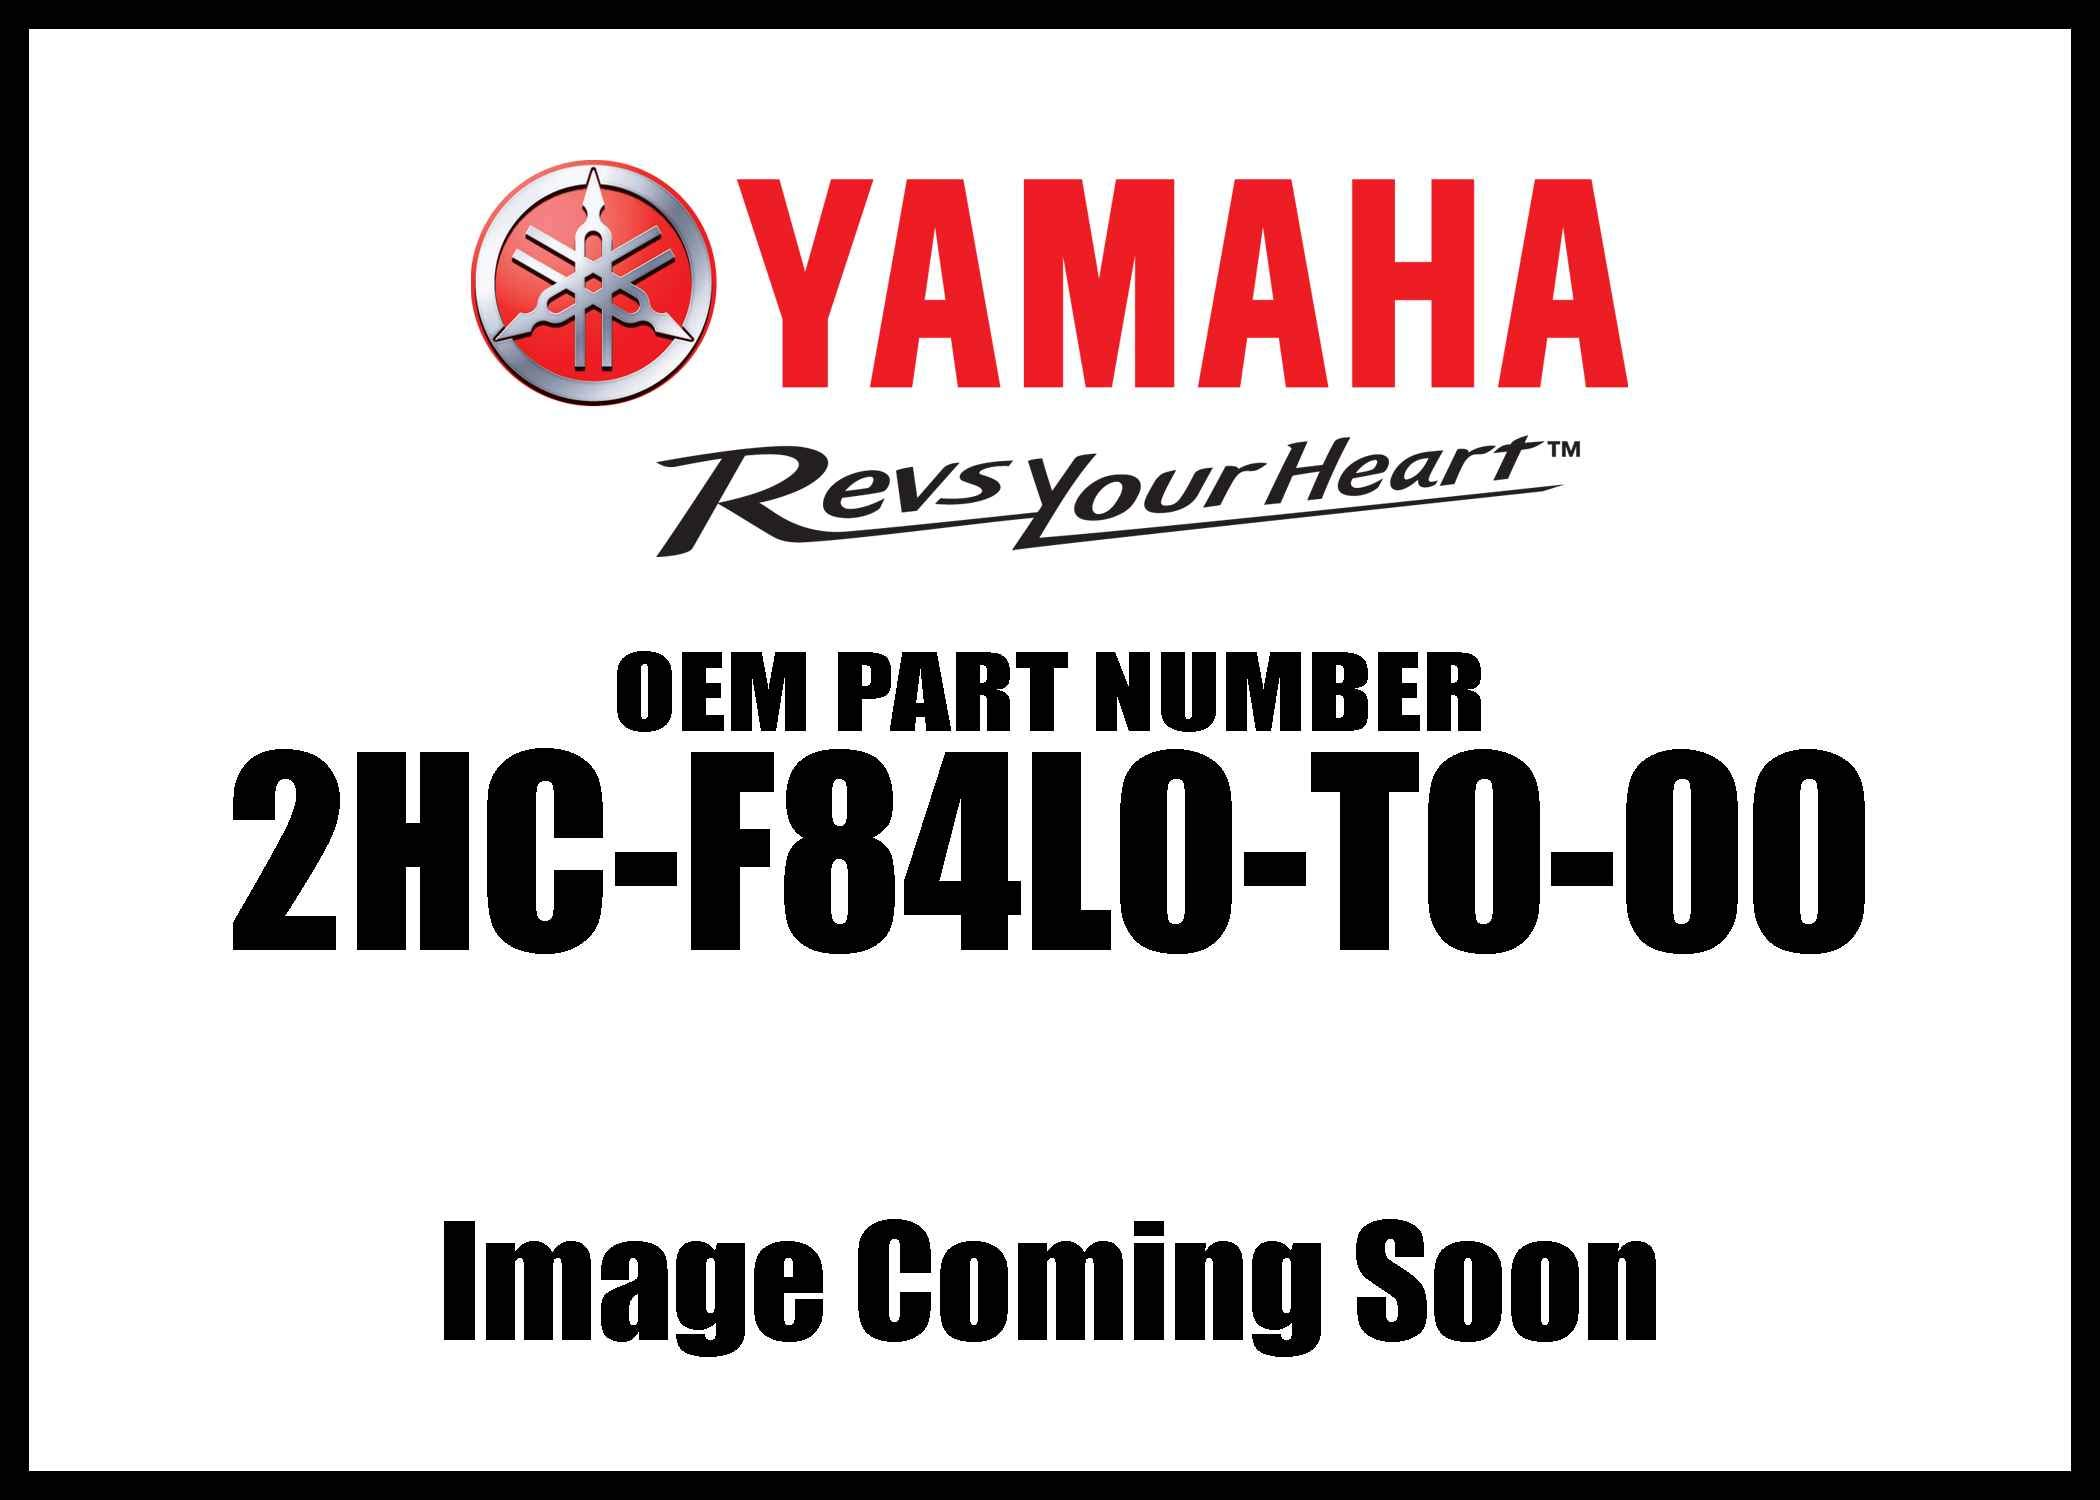 YAMAHA 2HC-F84L0-T0-00 Desert Front Grab Bar with Winch Plate